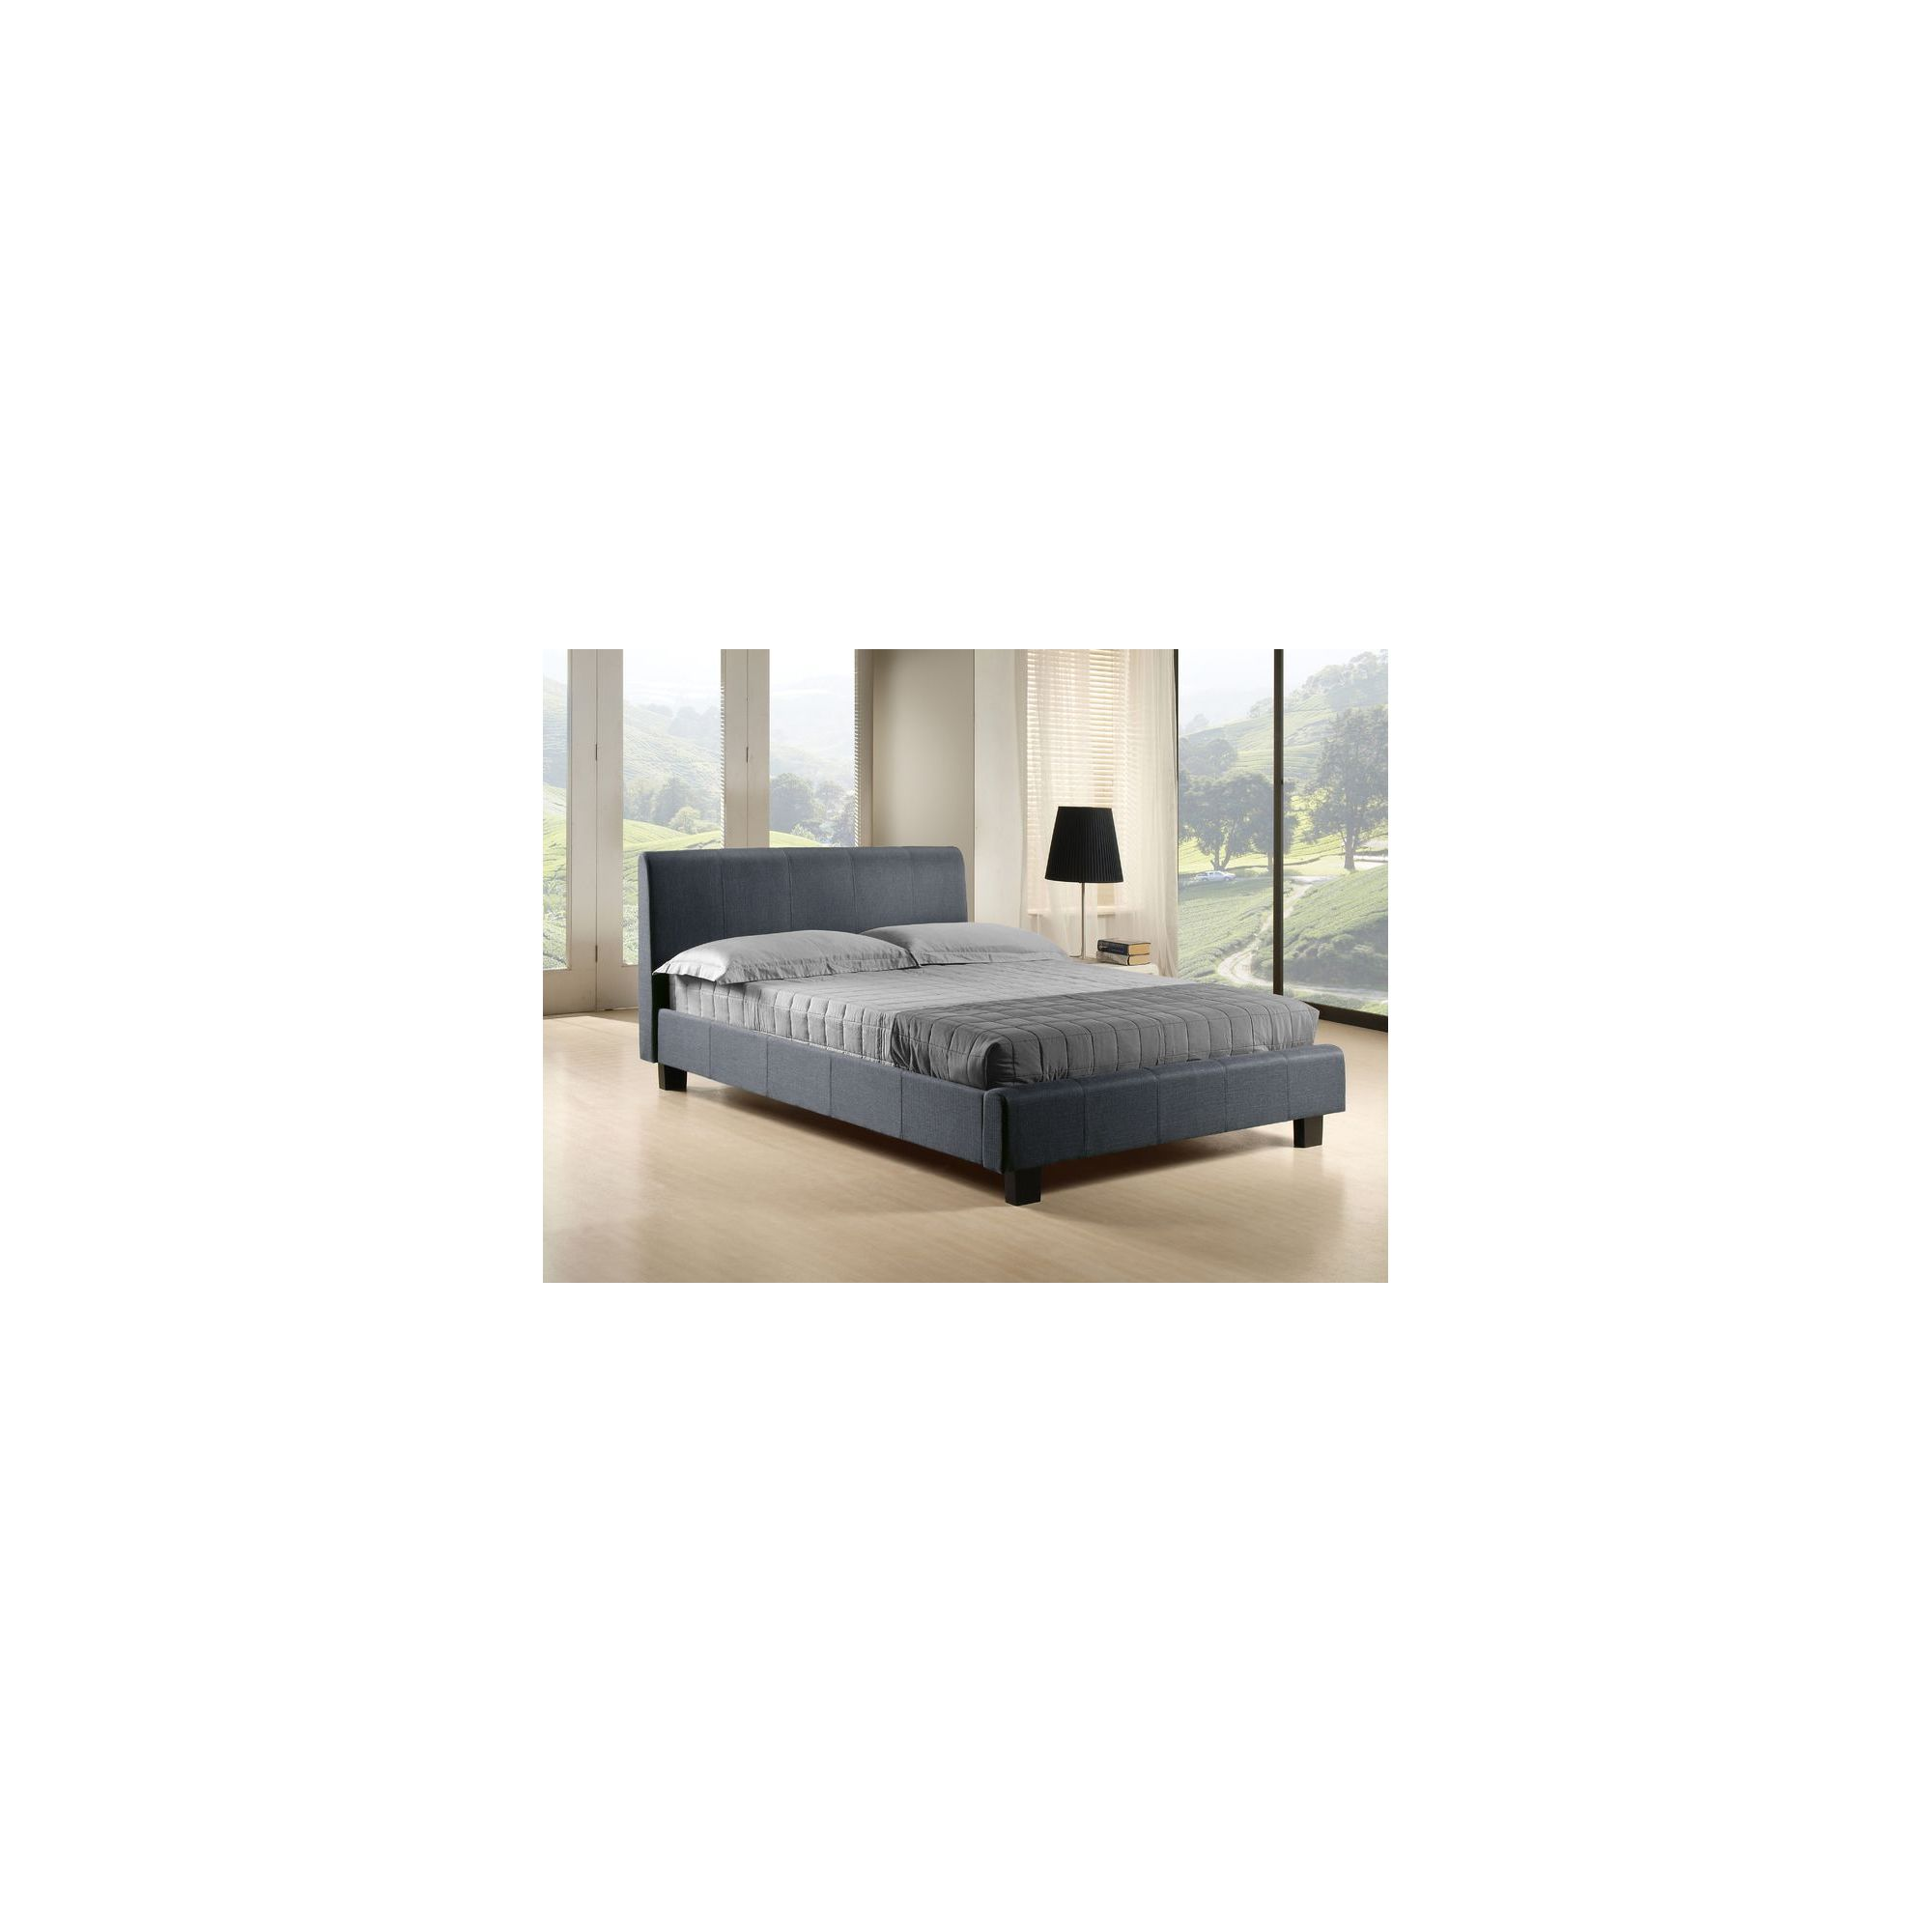 Altruna Hamburg Fabric Bed Frame - Double - Pebble Grey at Tesco Direct